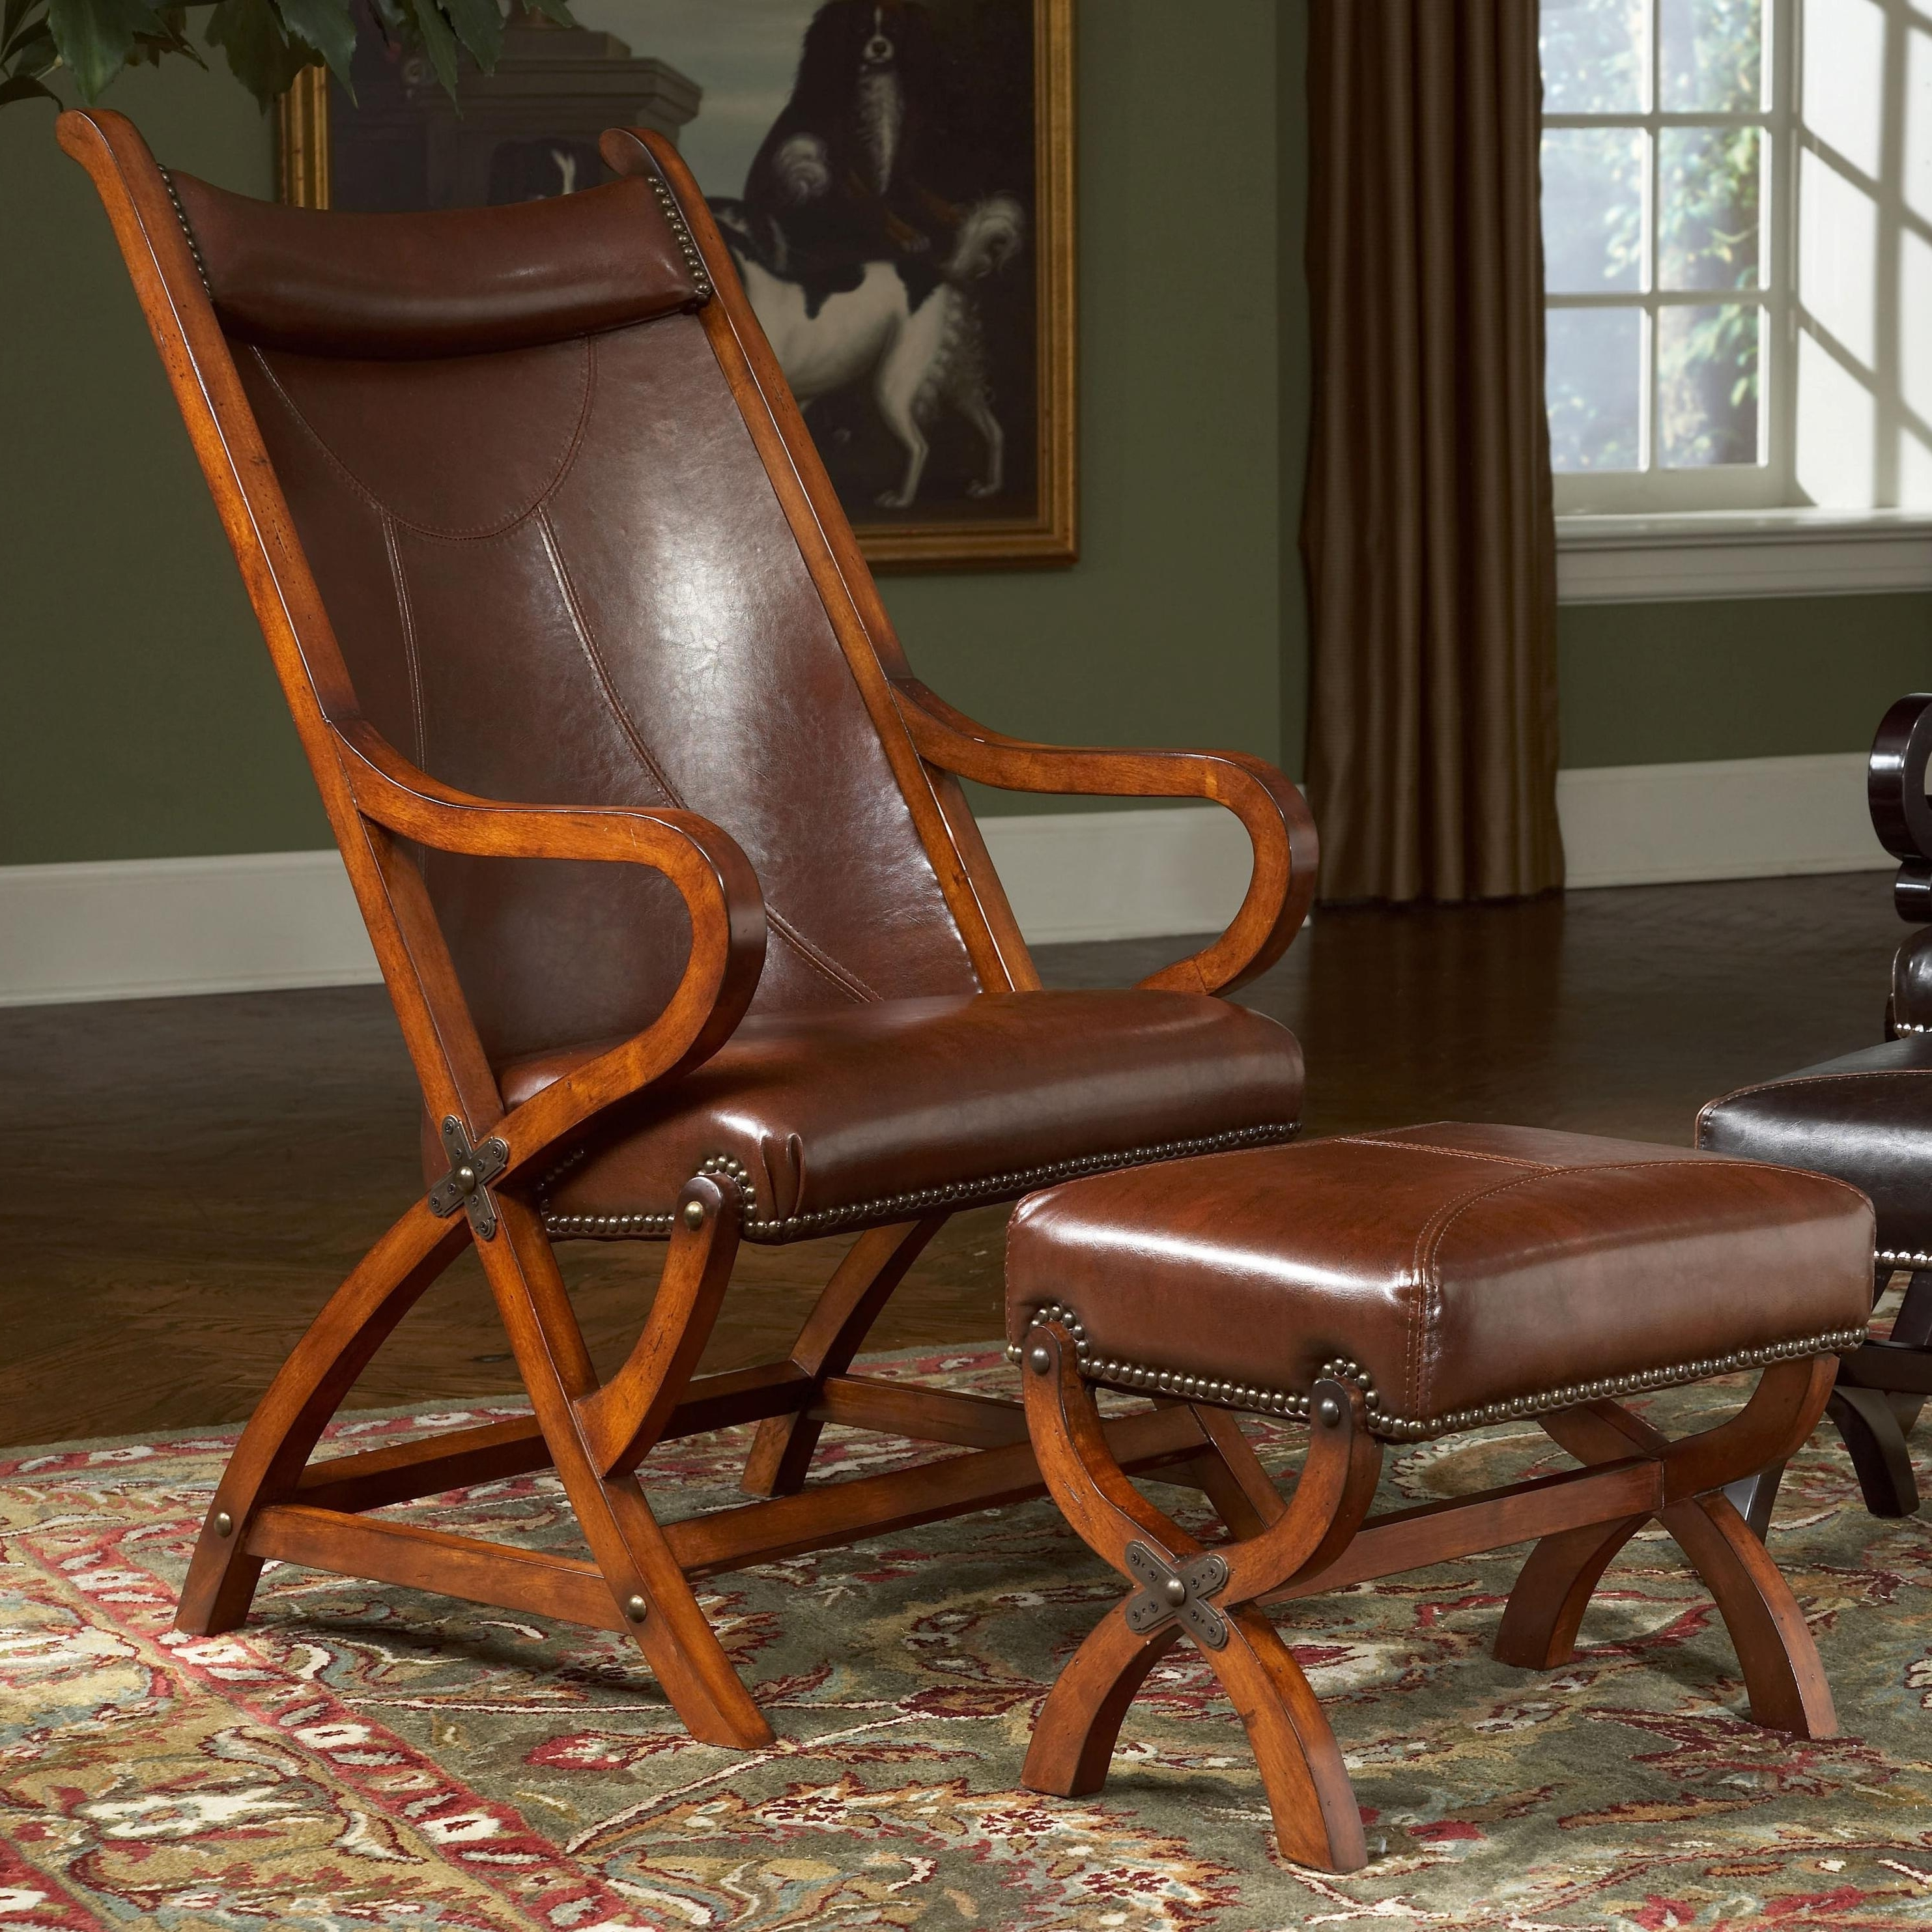 Lindy's Furniture Within Current Rocking Chairs With Ottoman (View 5 of 20)